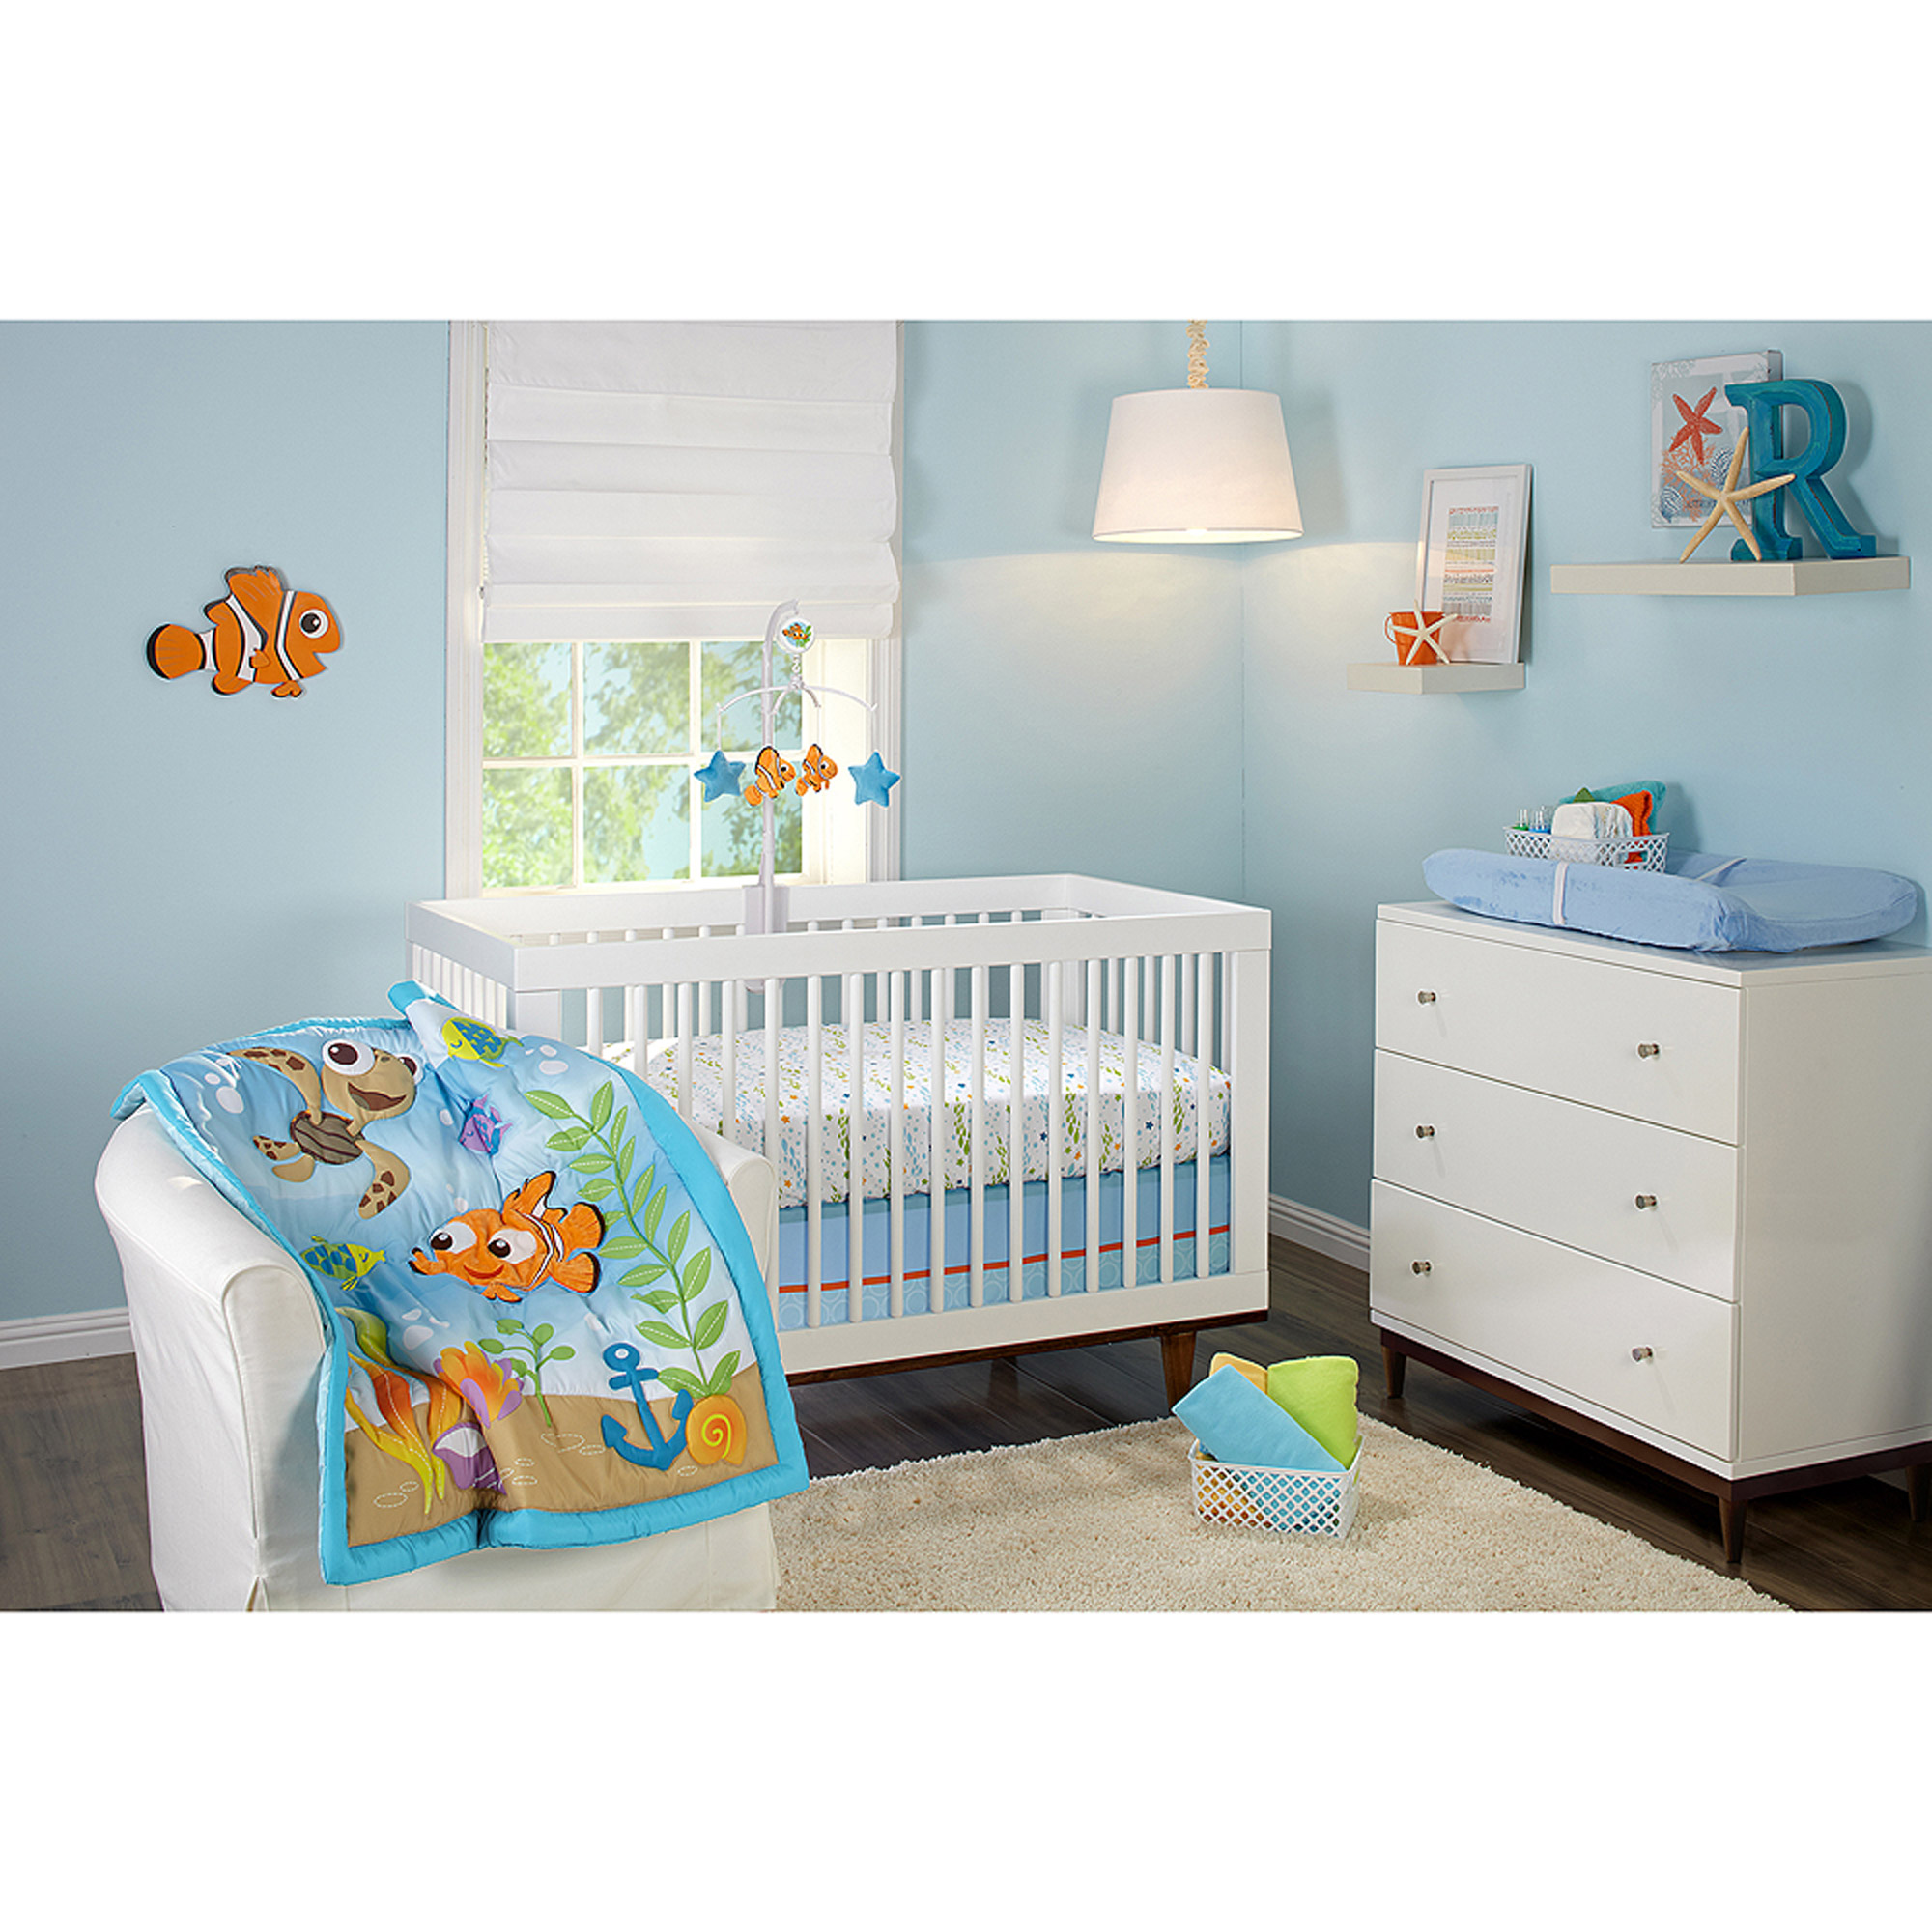 Disney Nemo Day at Sea 3-Piece Crib Bedding Set